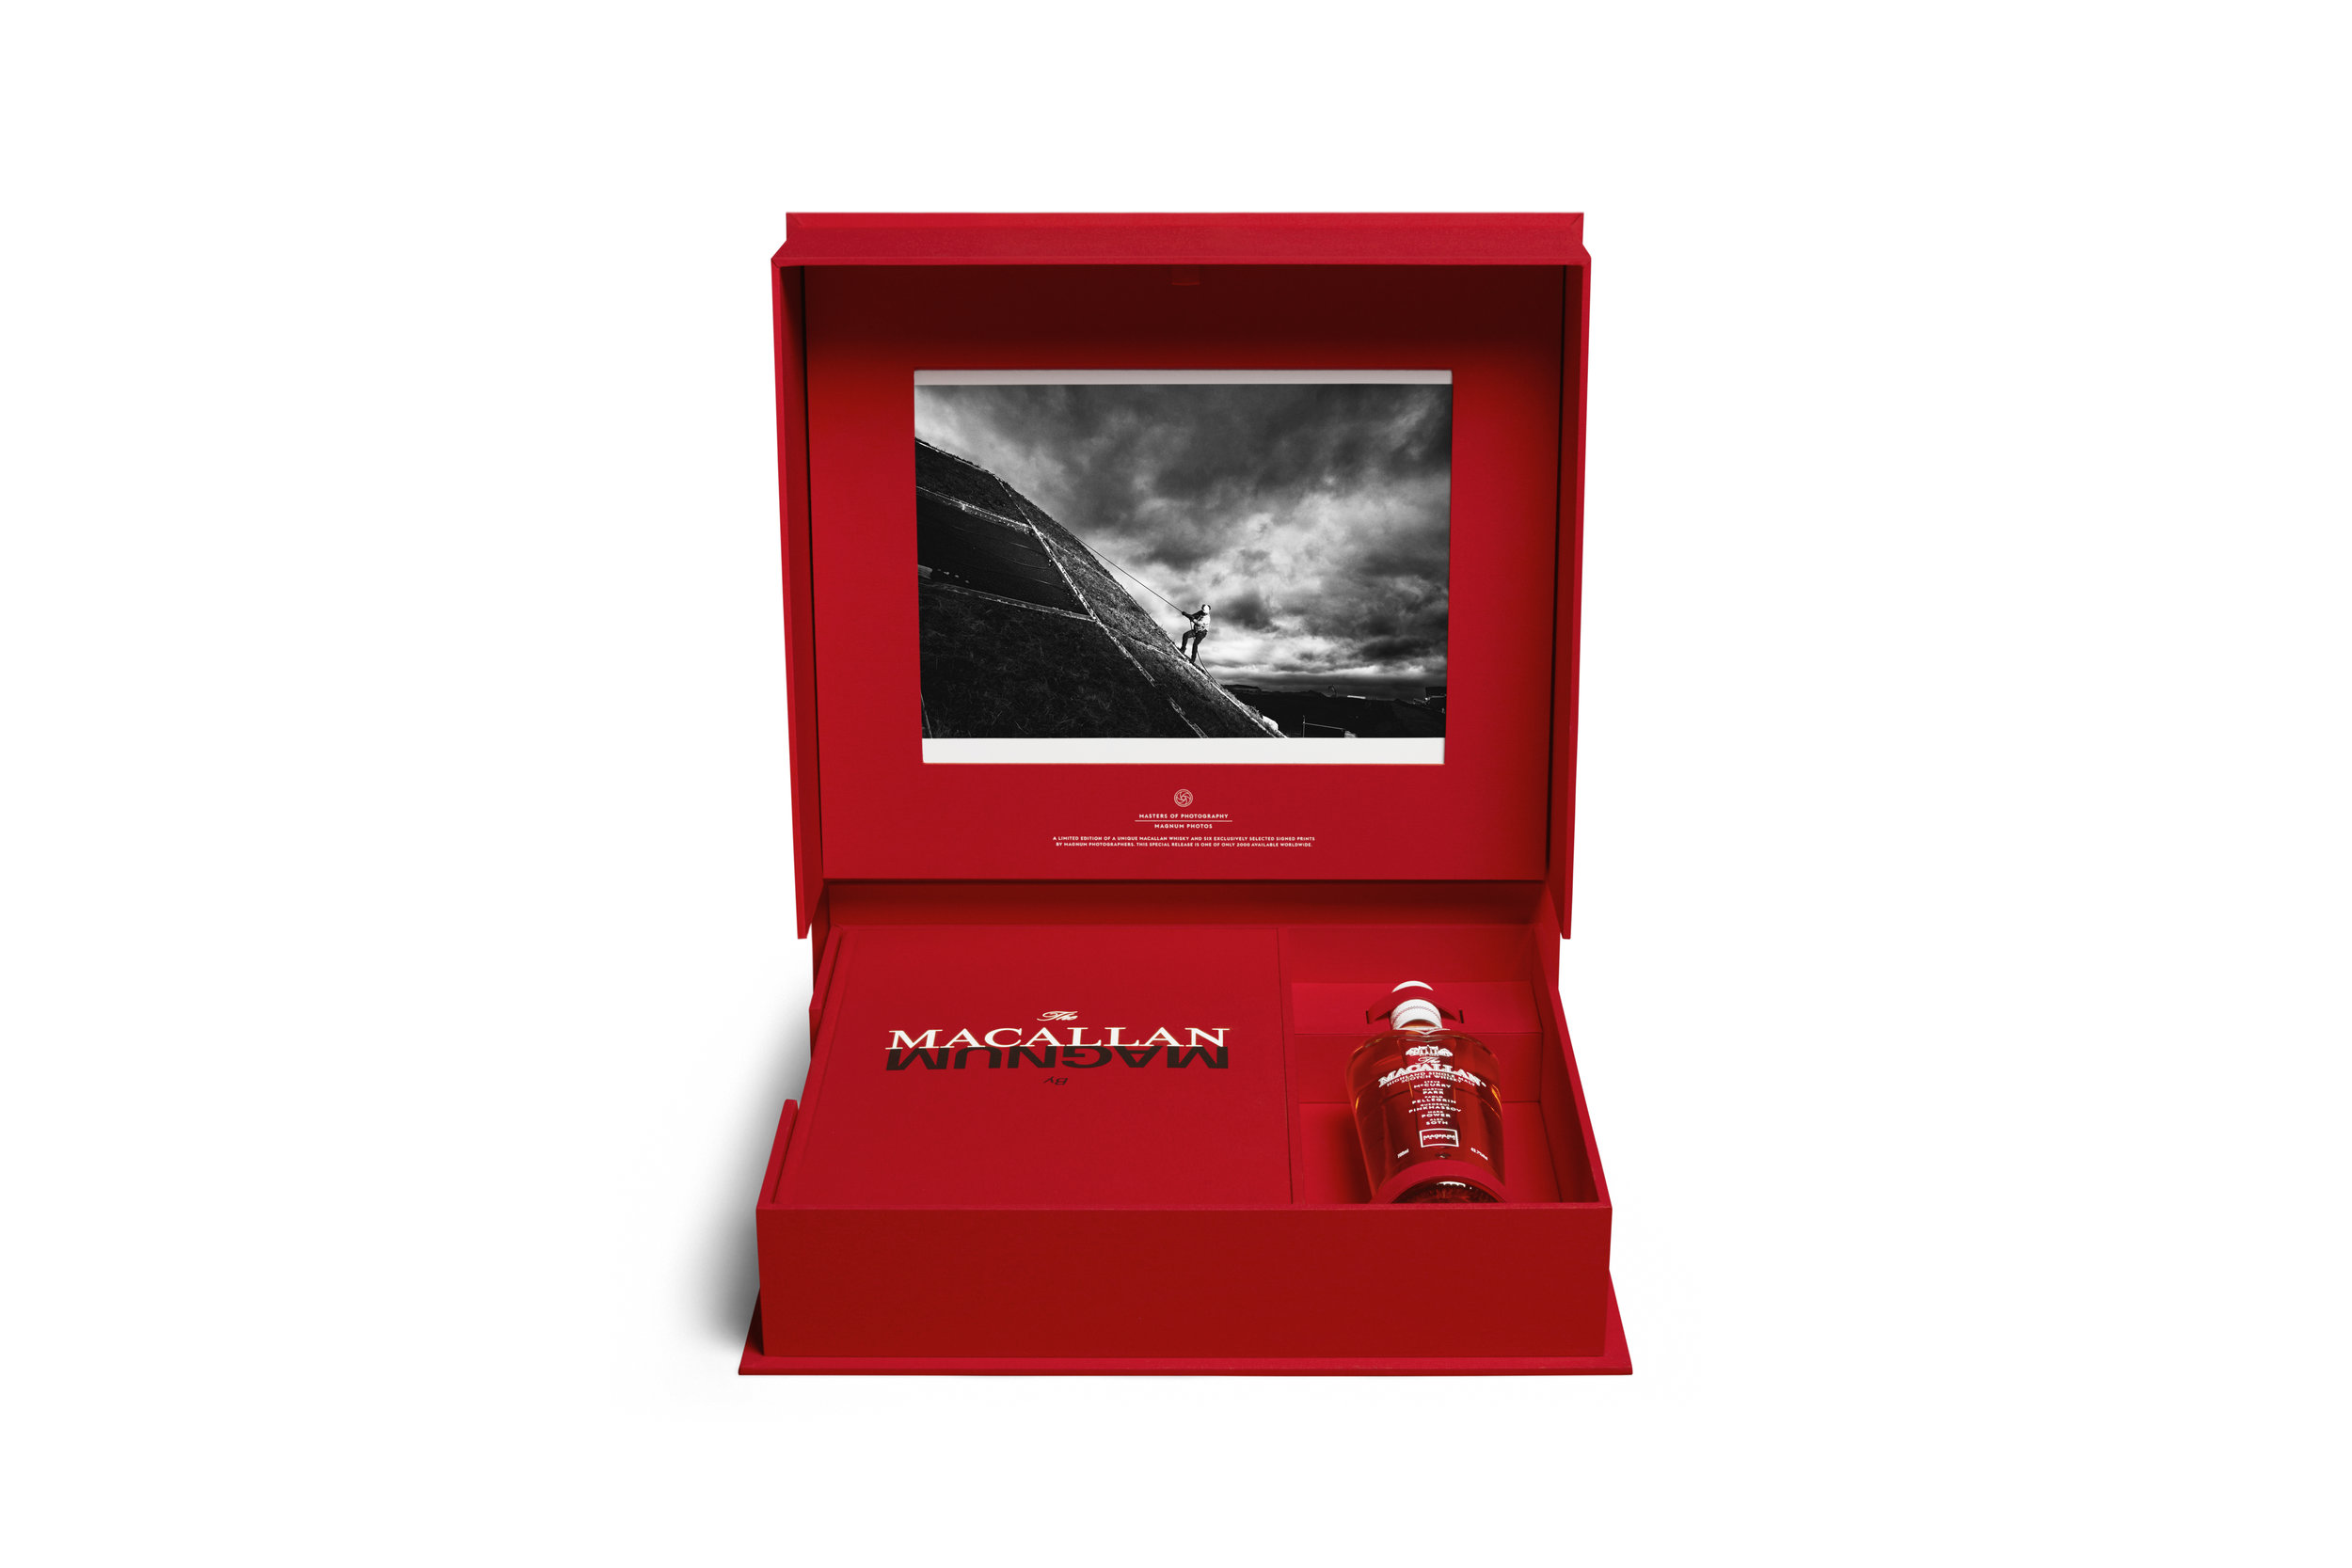 6. The Macallan Masters of Photography Magnum Edition_Paolo Pellegrin.jpg